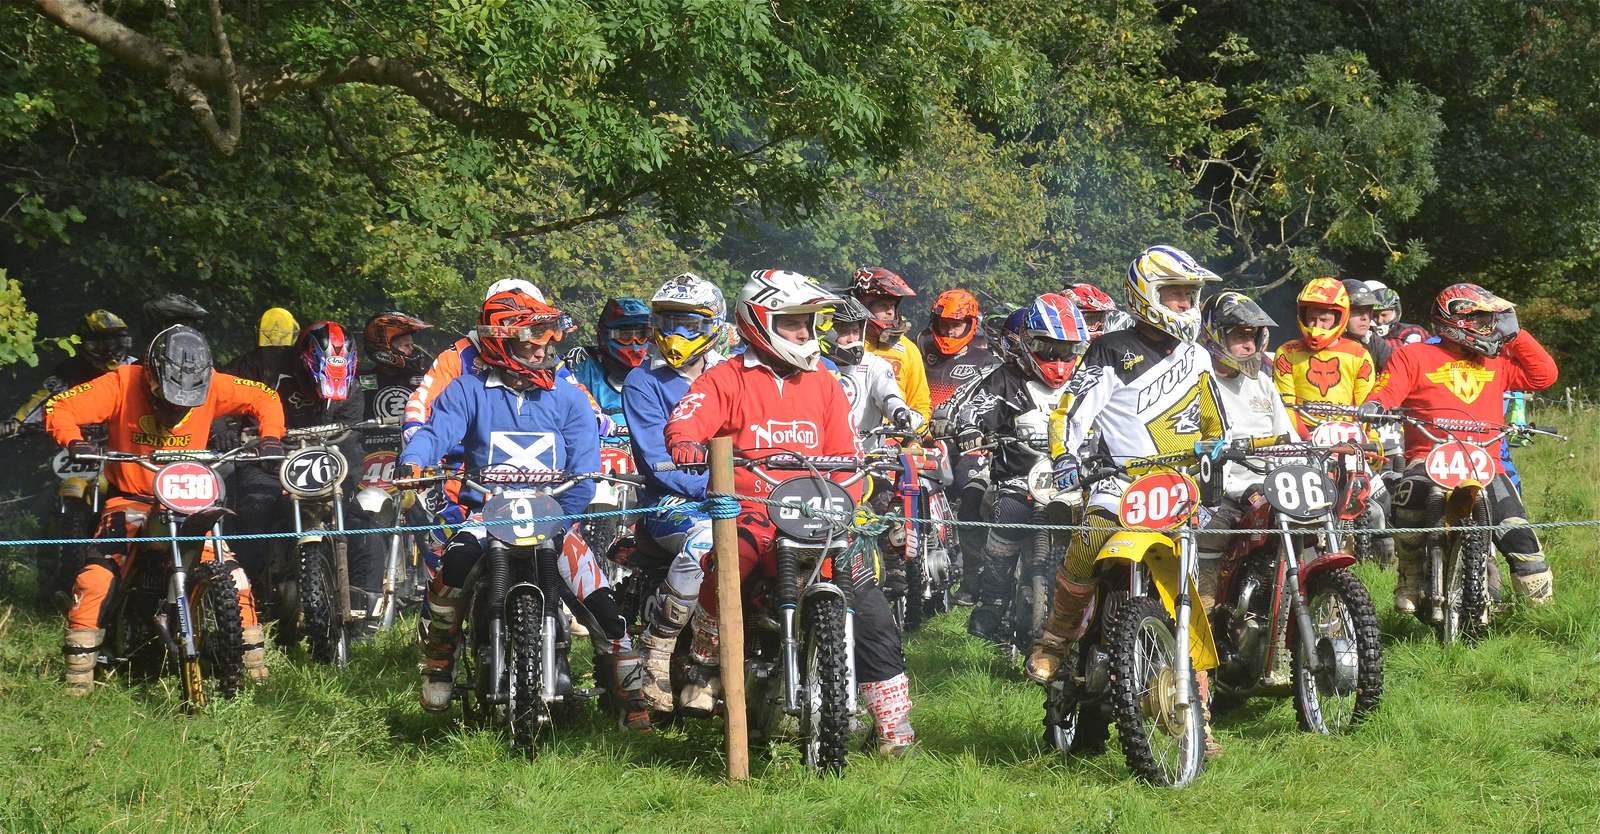 Llanthony Classic Scramble Photos September 2015 classicdirtbikerider.com..4